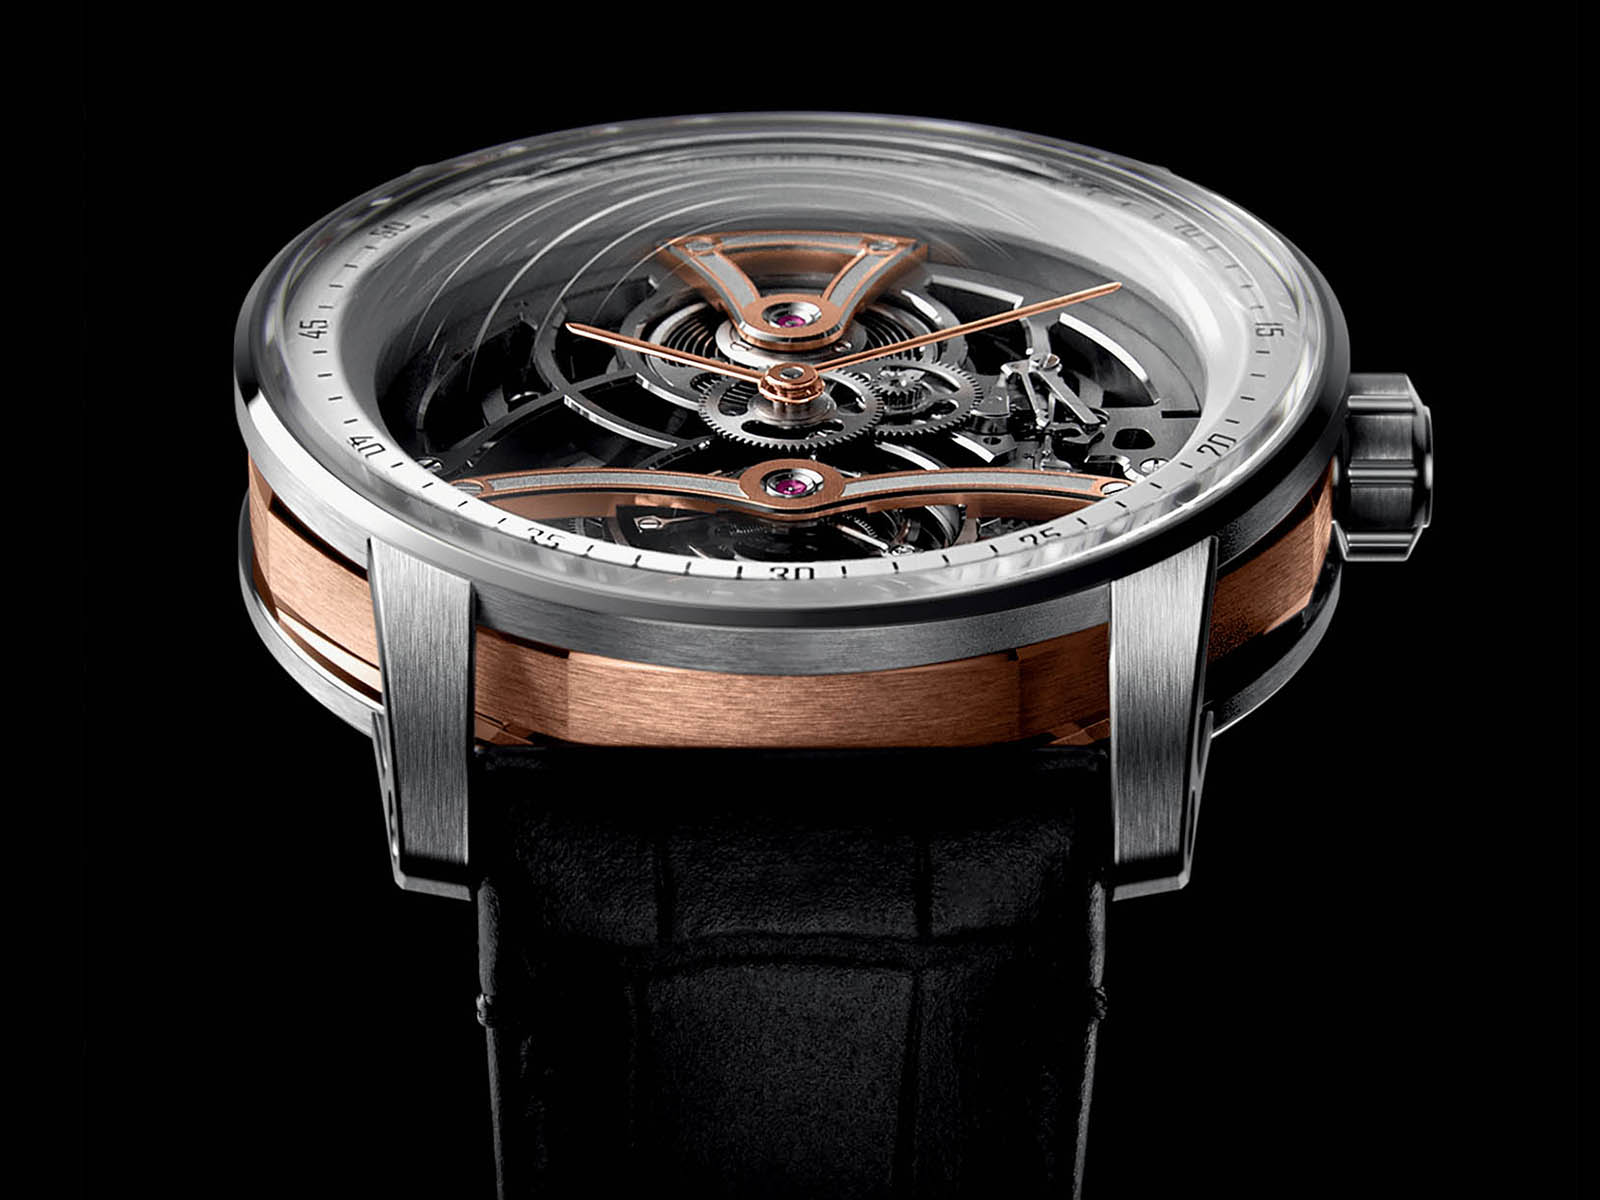 26600cr-oo-d002cr-99-audemars-piguet-code-11-59-by-audemars-piguet-tourbillon-openworked-only-watch-edition-2.jpg